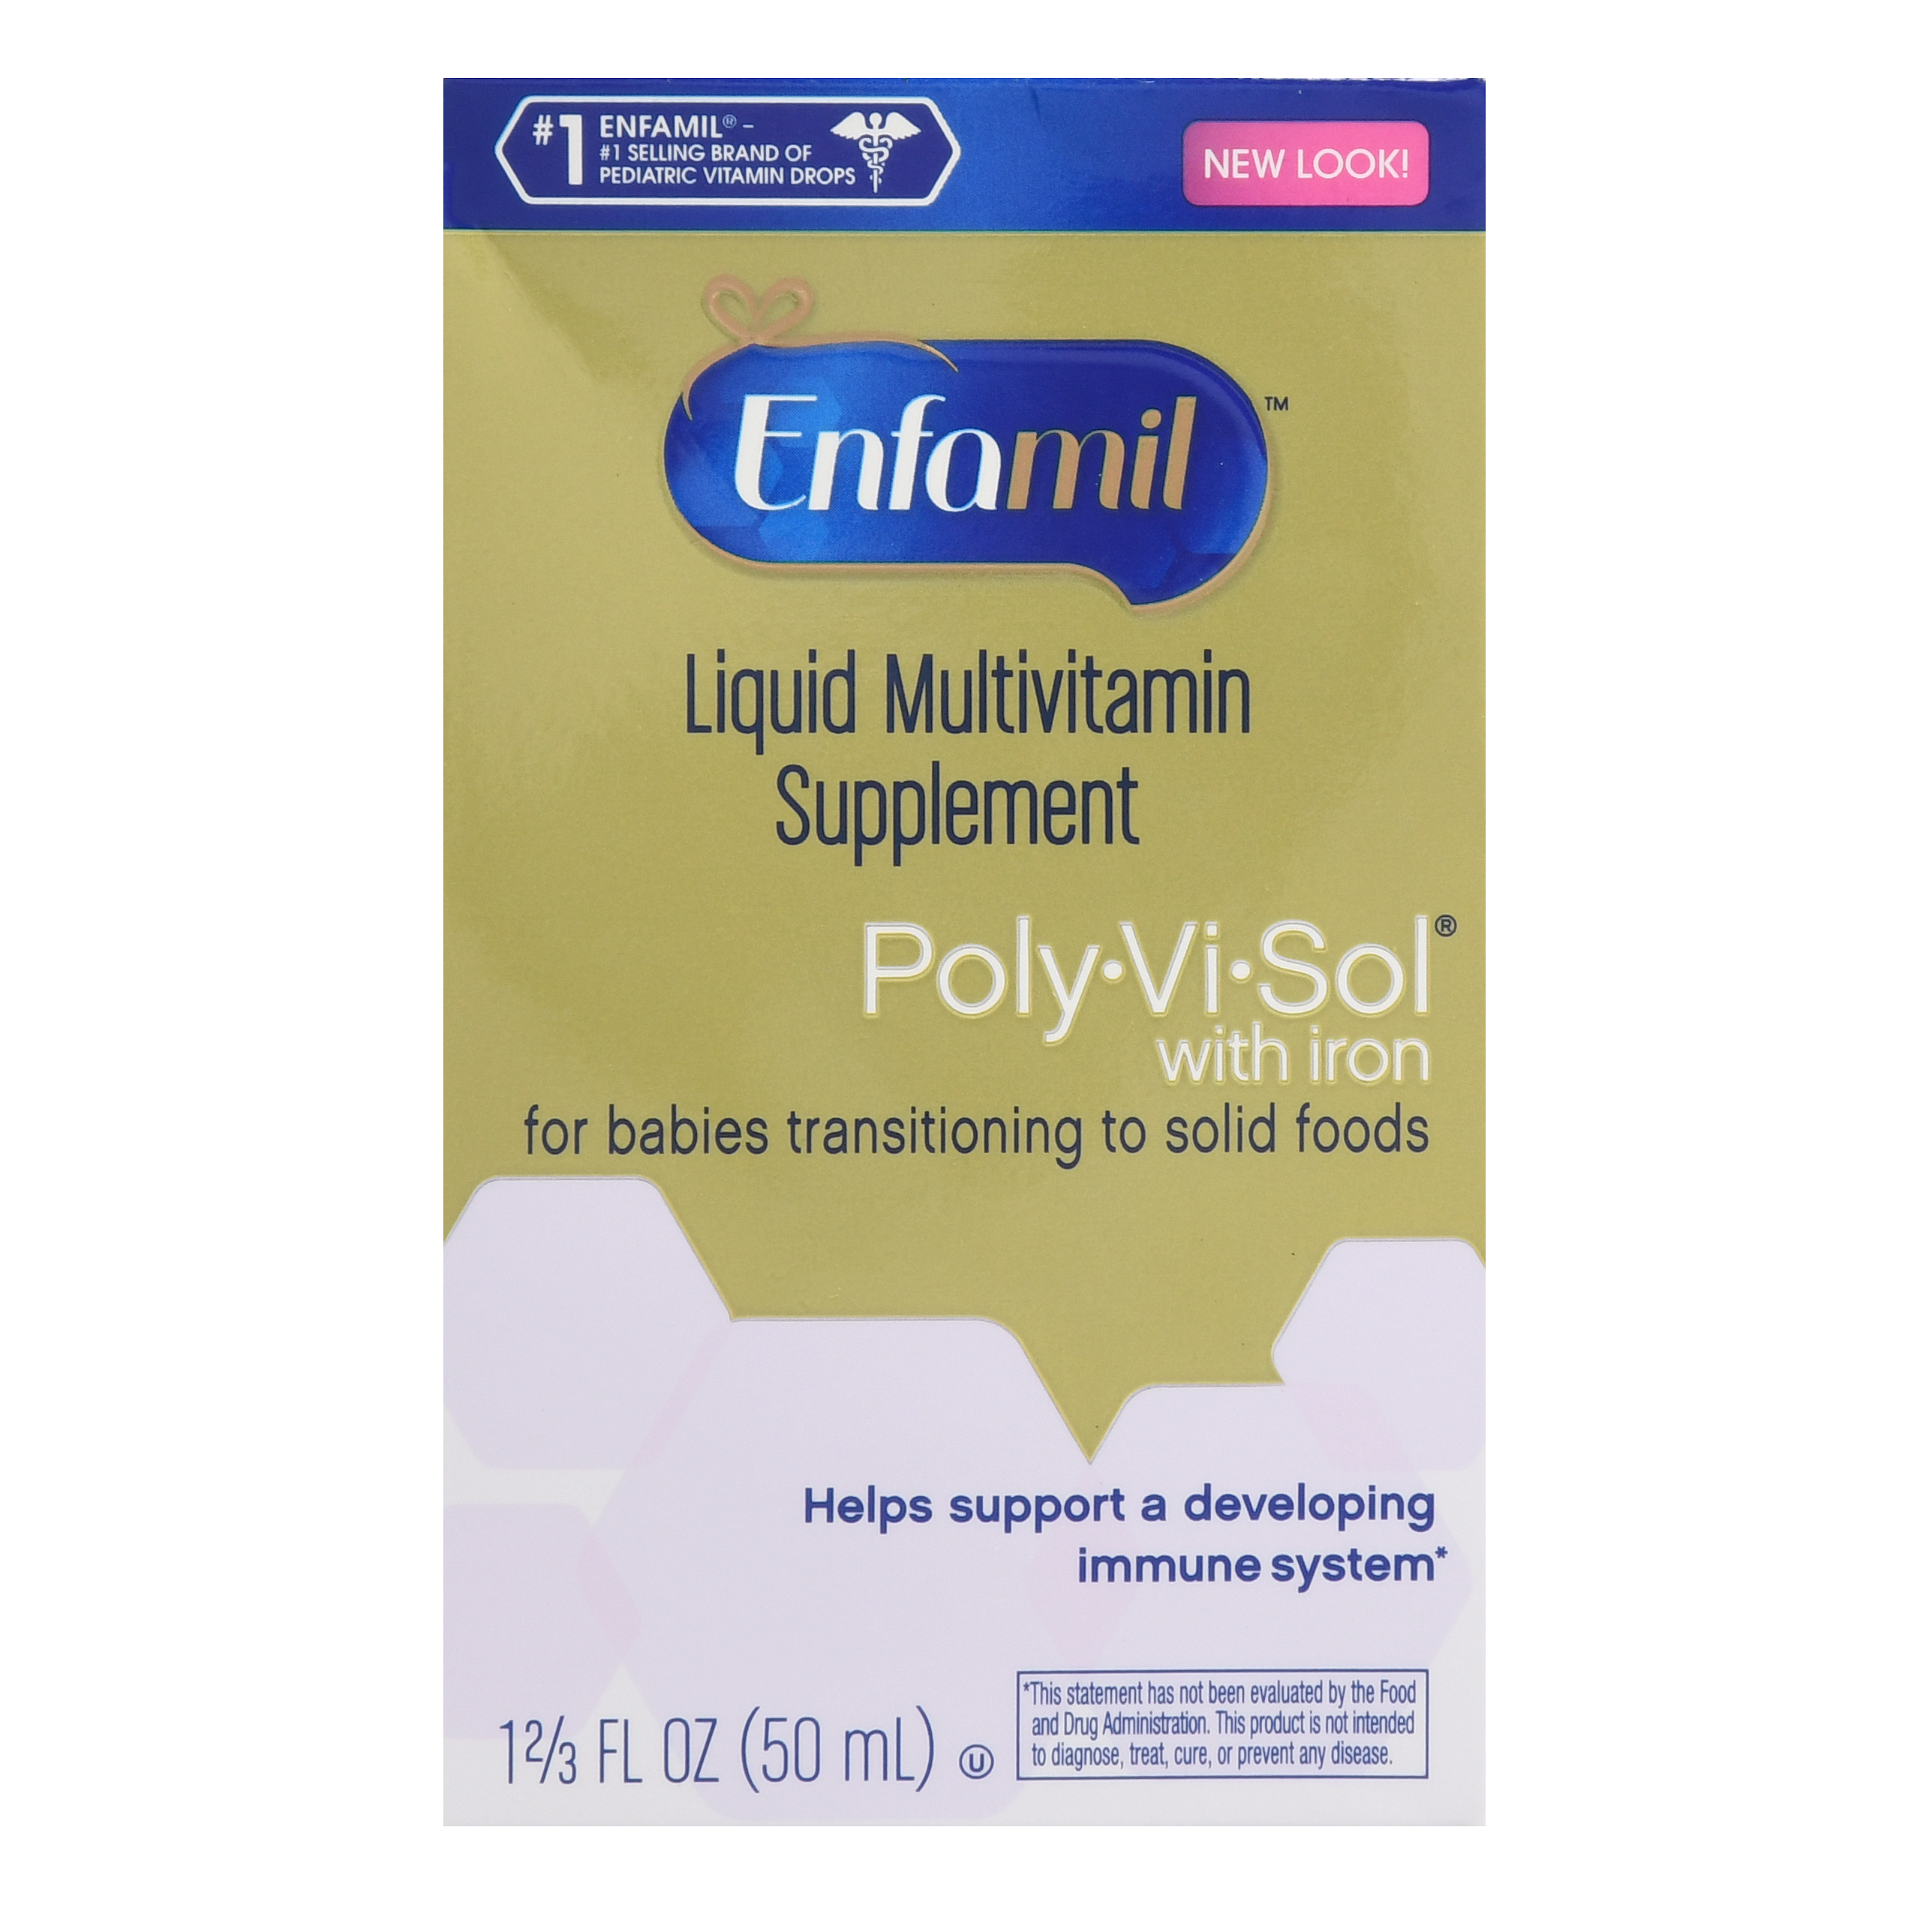 Enfamil Liquid Multivitamin Supplement Drops Poly-Vi-Sol With Iron, 50.0 ML